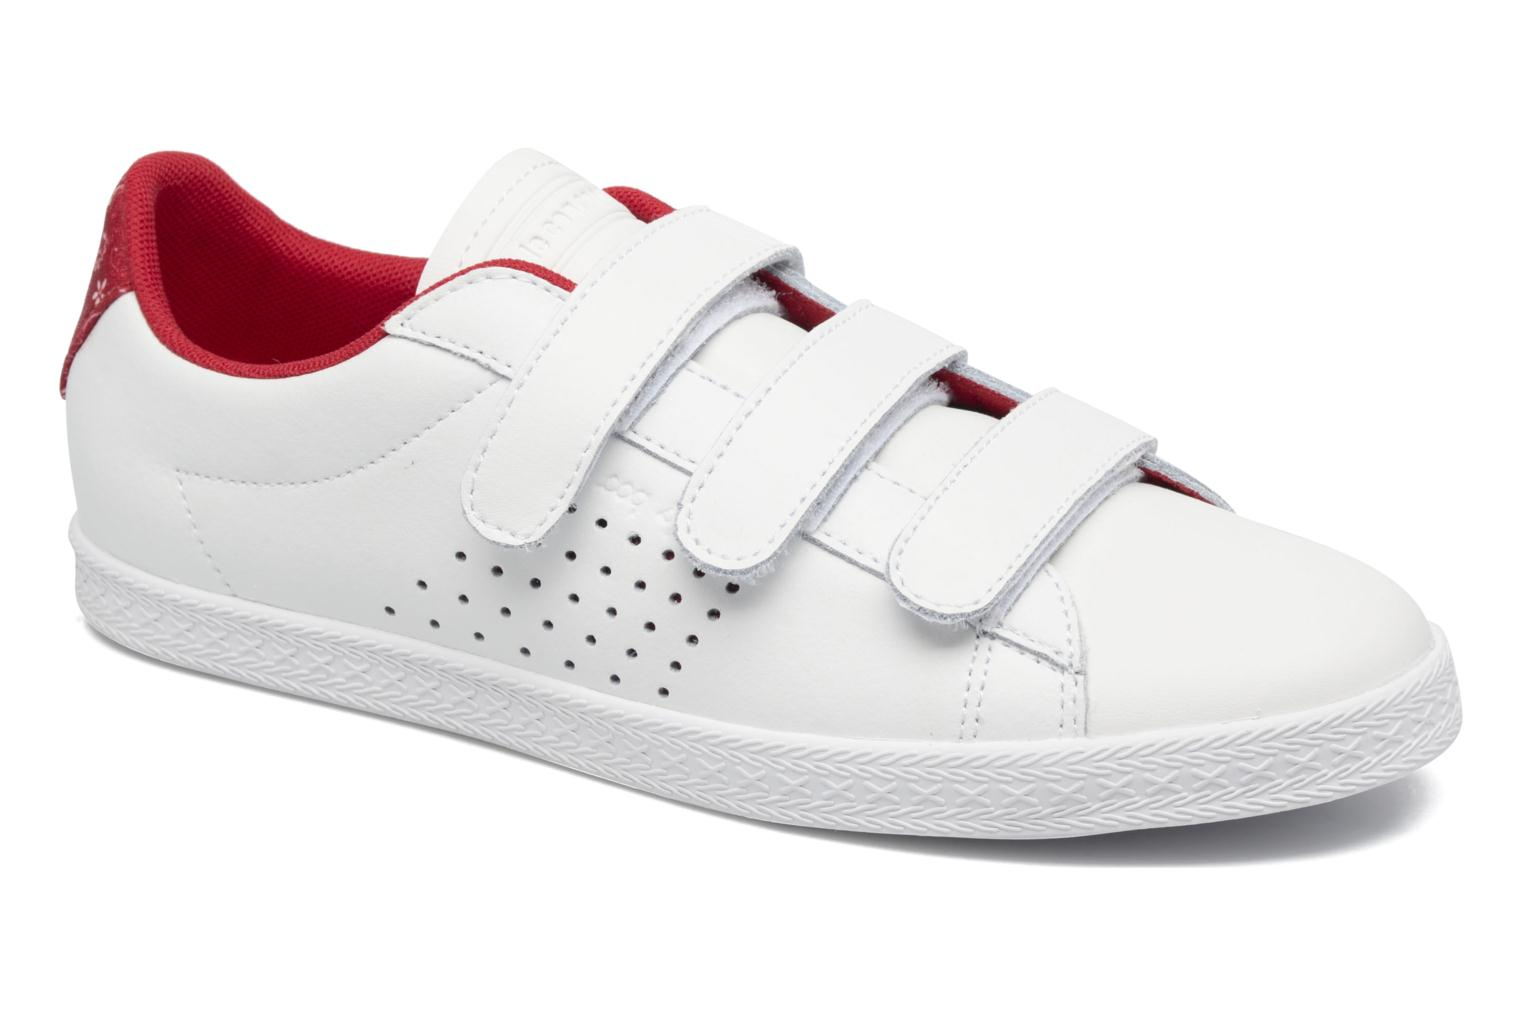 Charline Strap Streetwise Optical White/Vintage Red